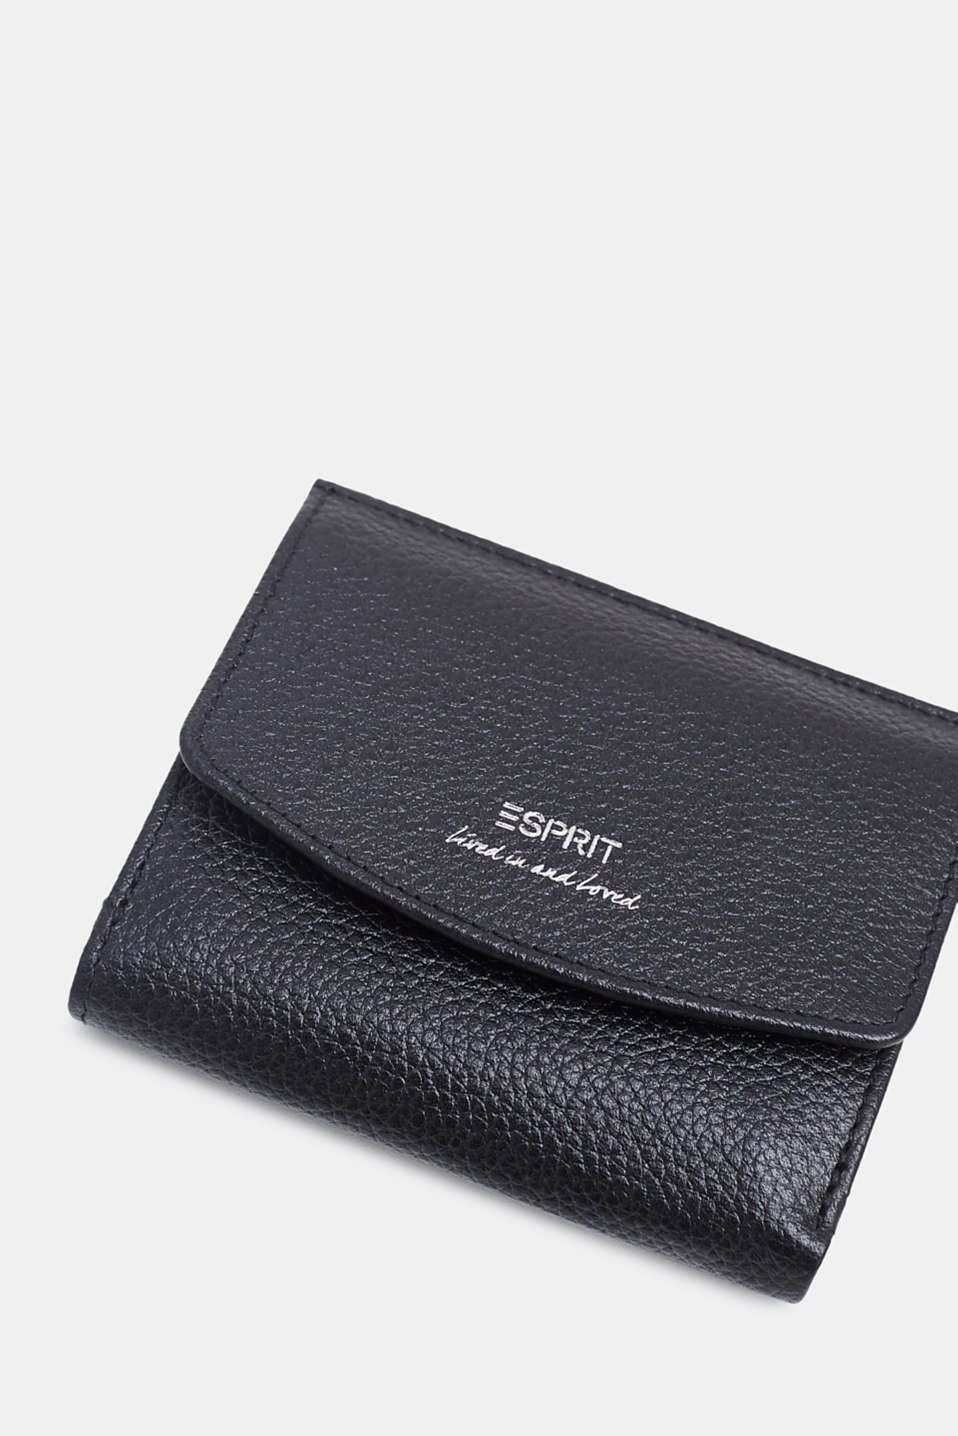 Accessories small leather, BLACK, detail image number 1